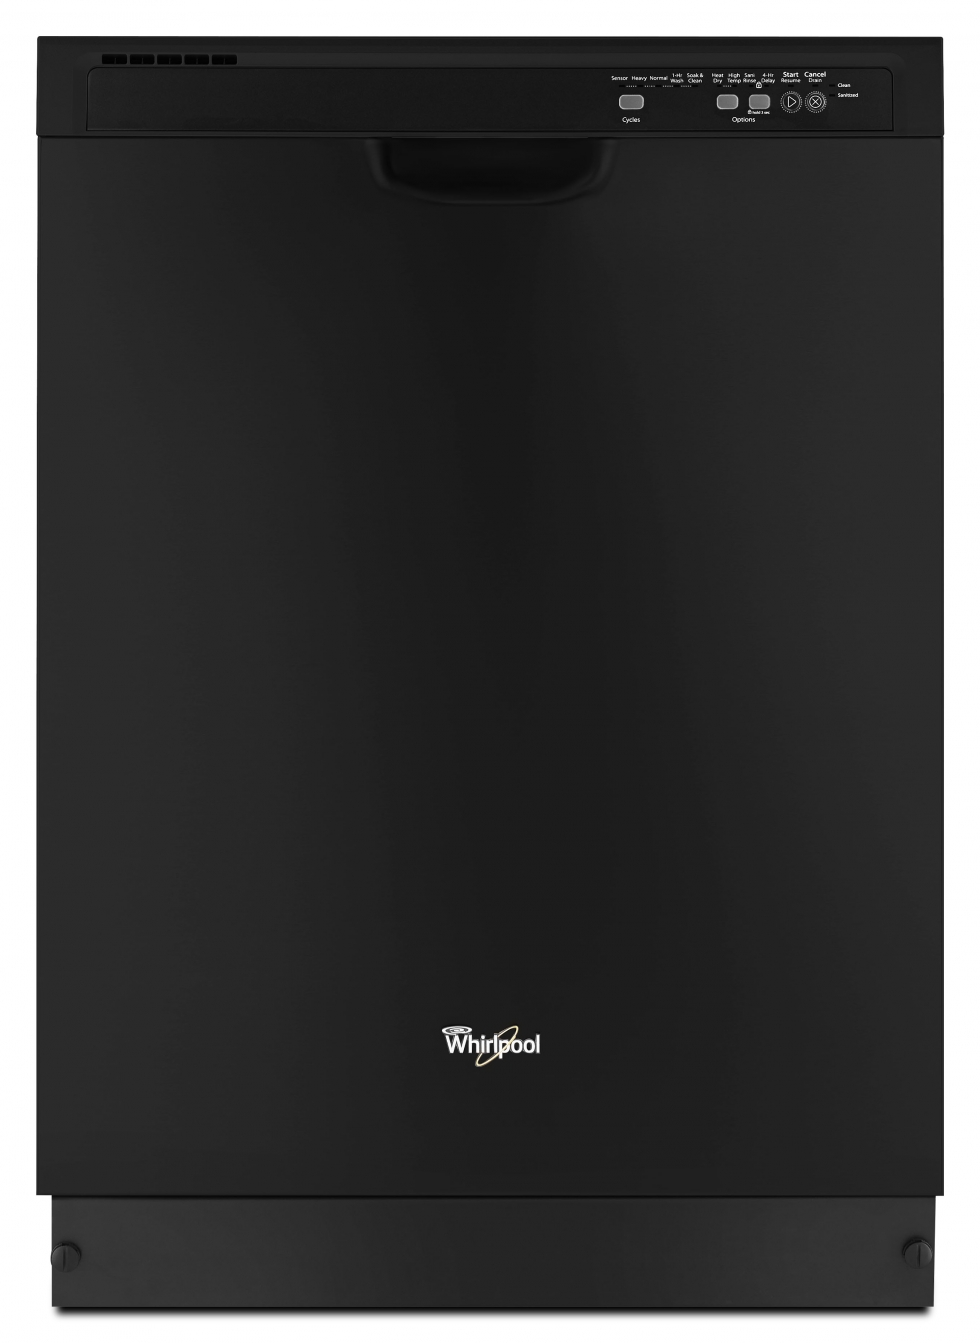 Whirlpool Dishwasher with Sensor Cycle Black